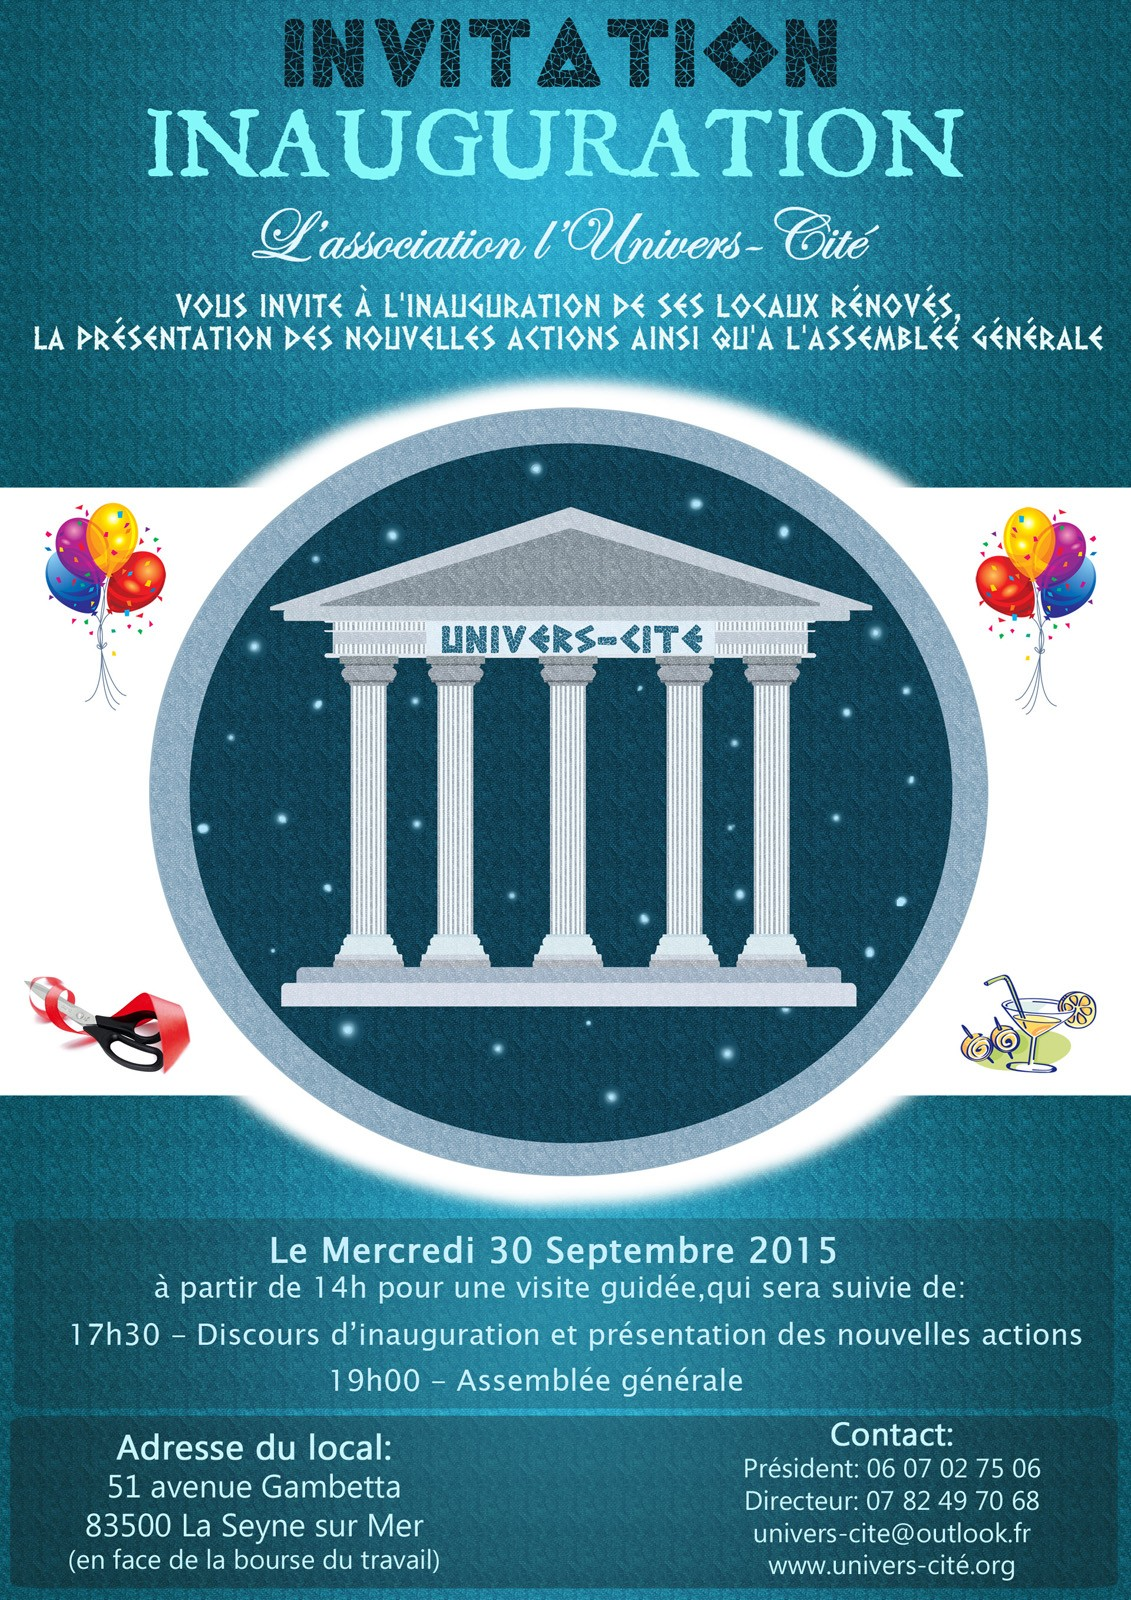 Invitation Inauguration Univers-Cité